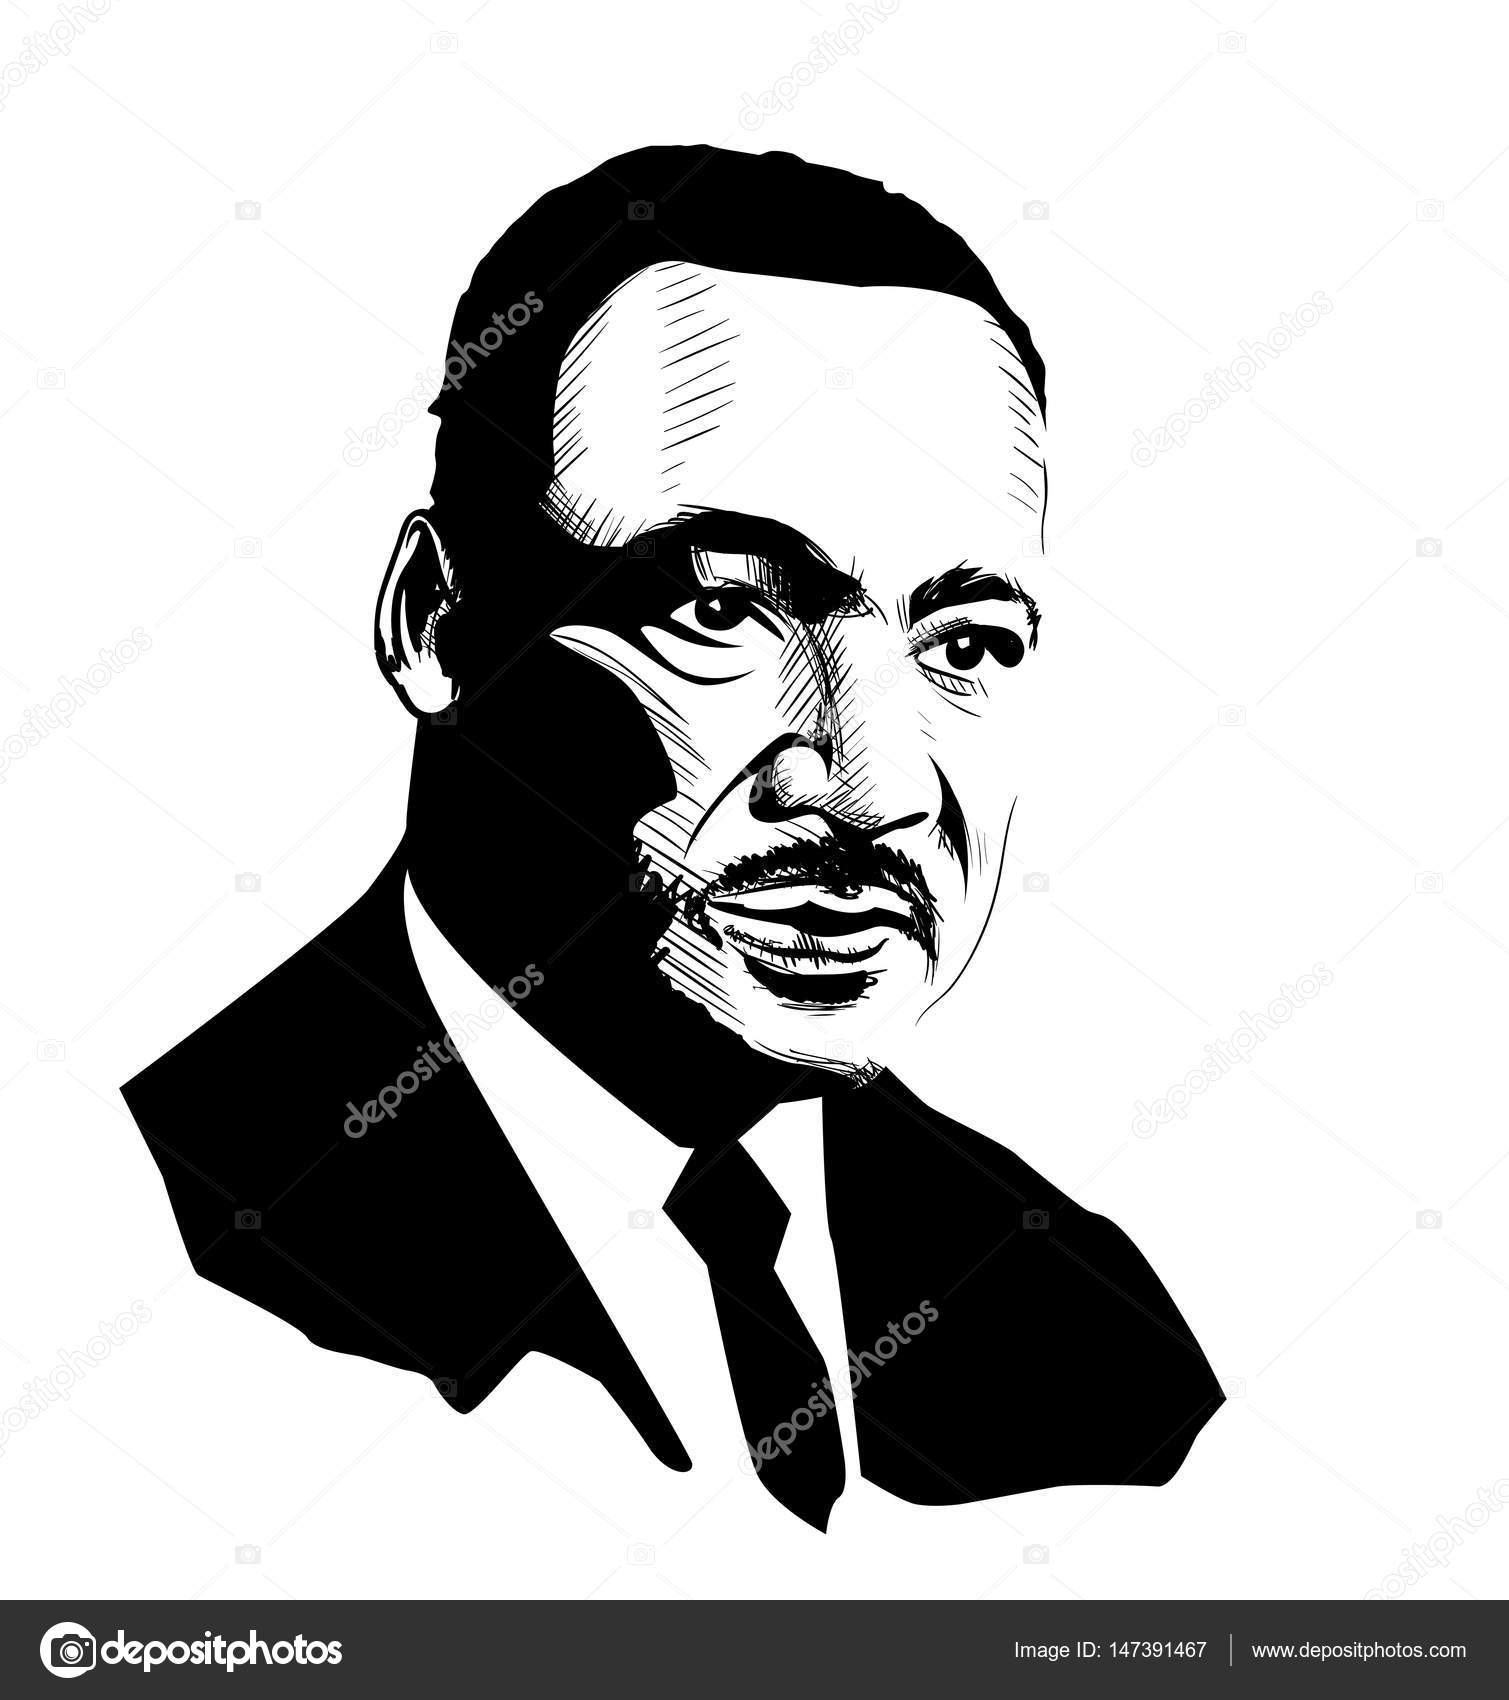 Martin Luther King Portrait Sketch Stock Vector C Levente 147391467